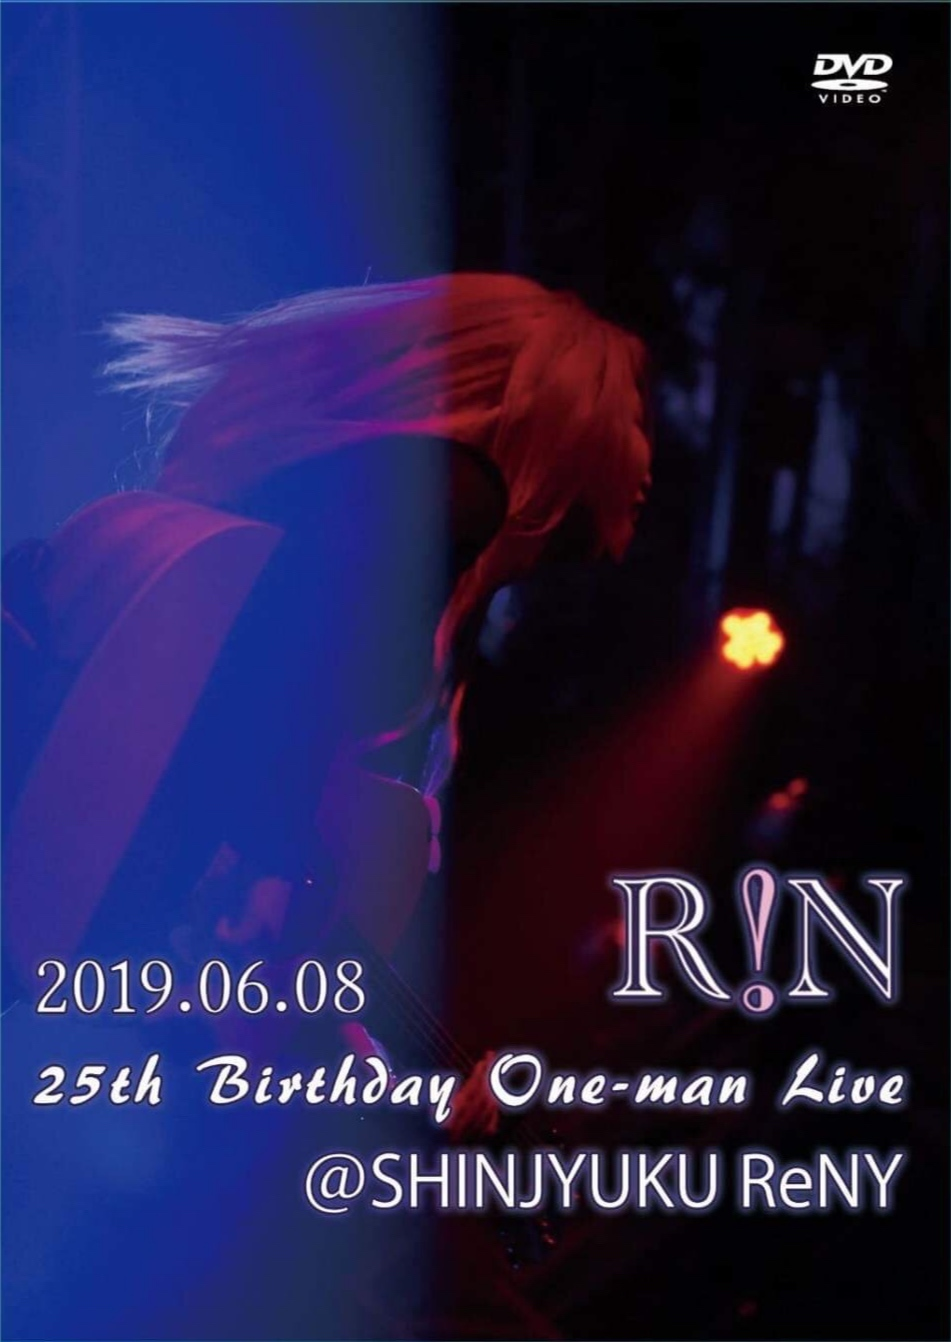 4th Live DVD「25th Birthday One-man Live@SHINJYUKU ReNY」